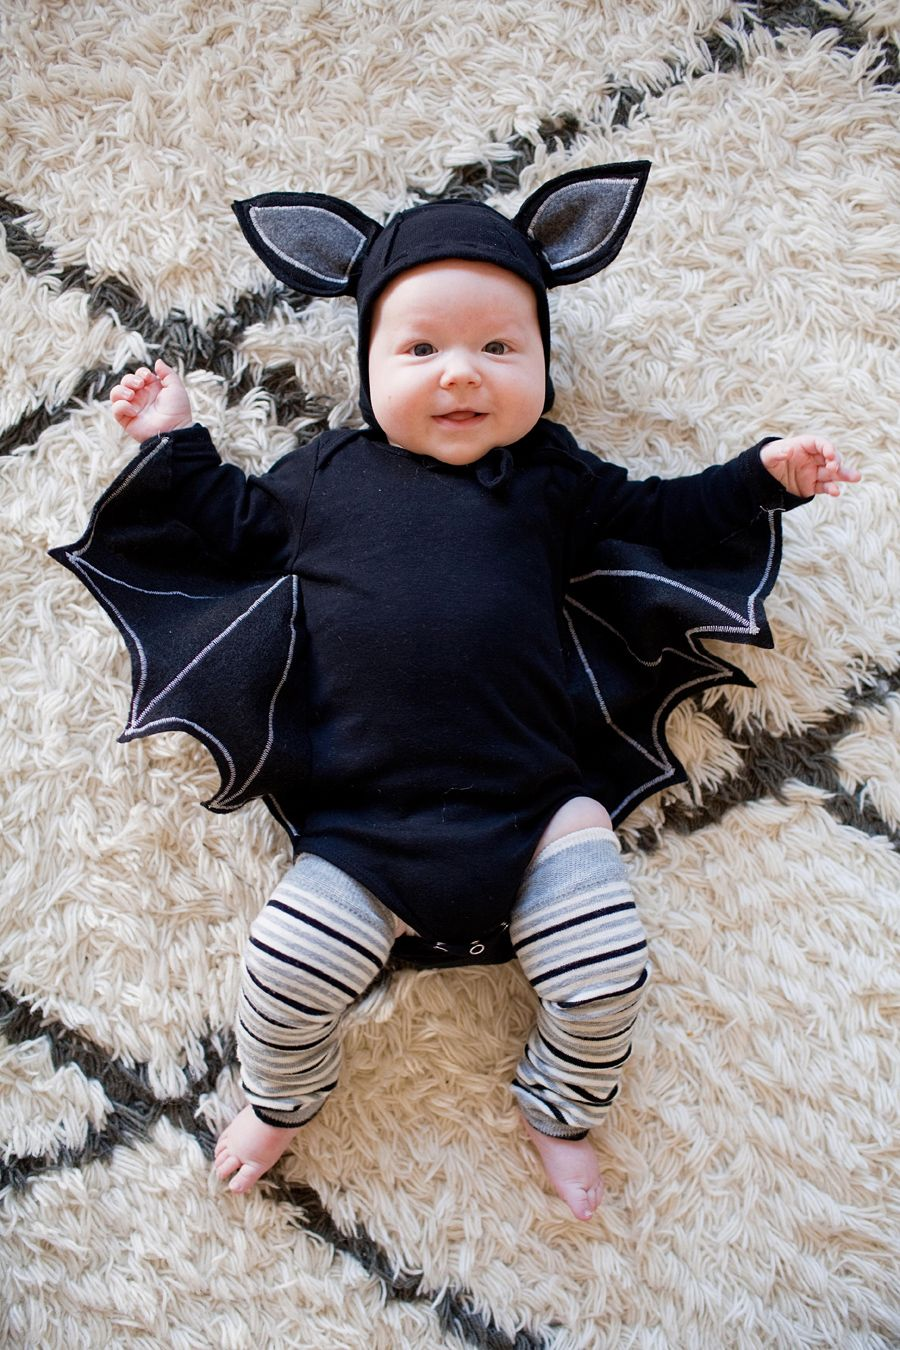 Creative halloween costume ideas for babies and toddlers crafts